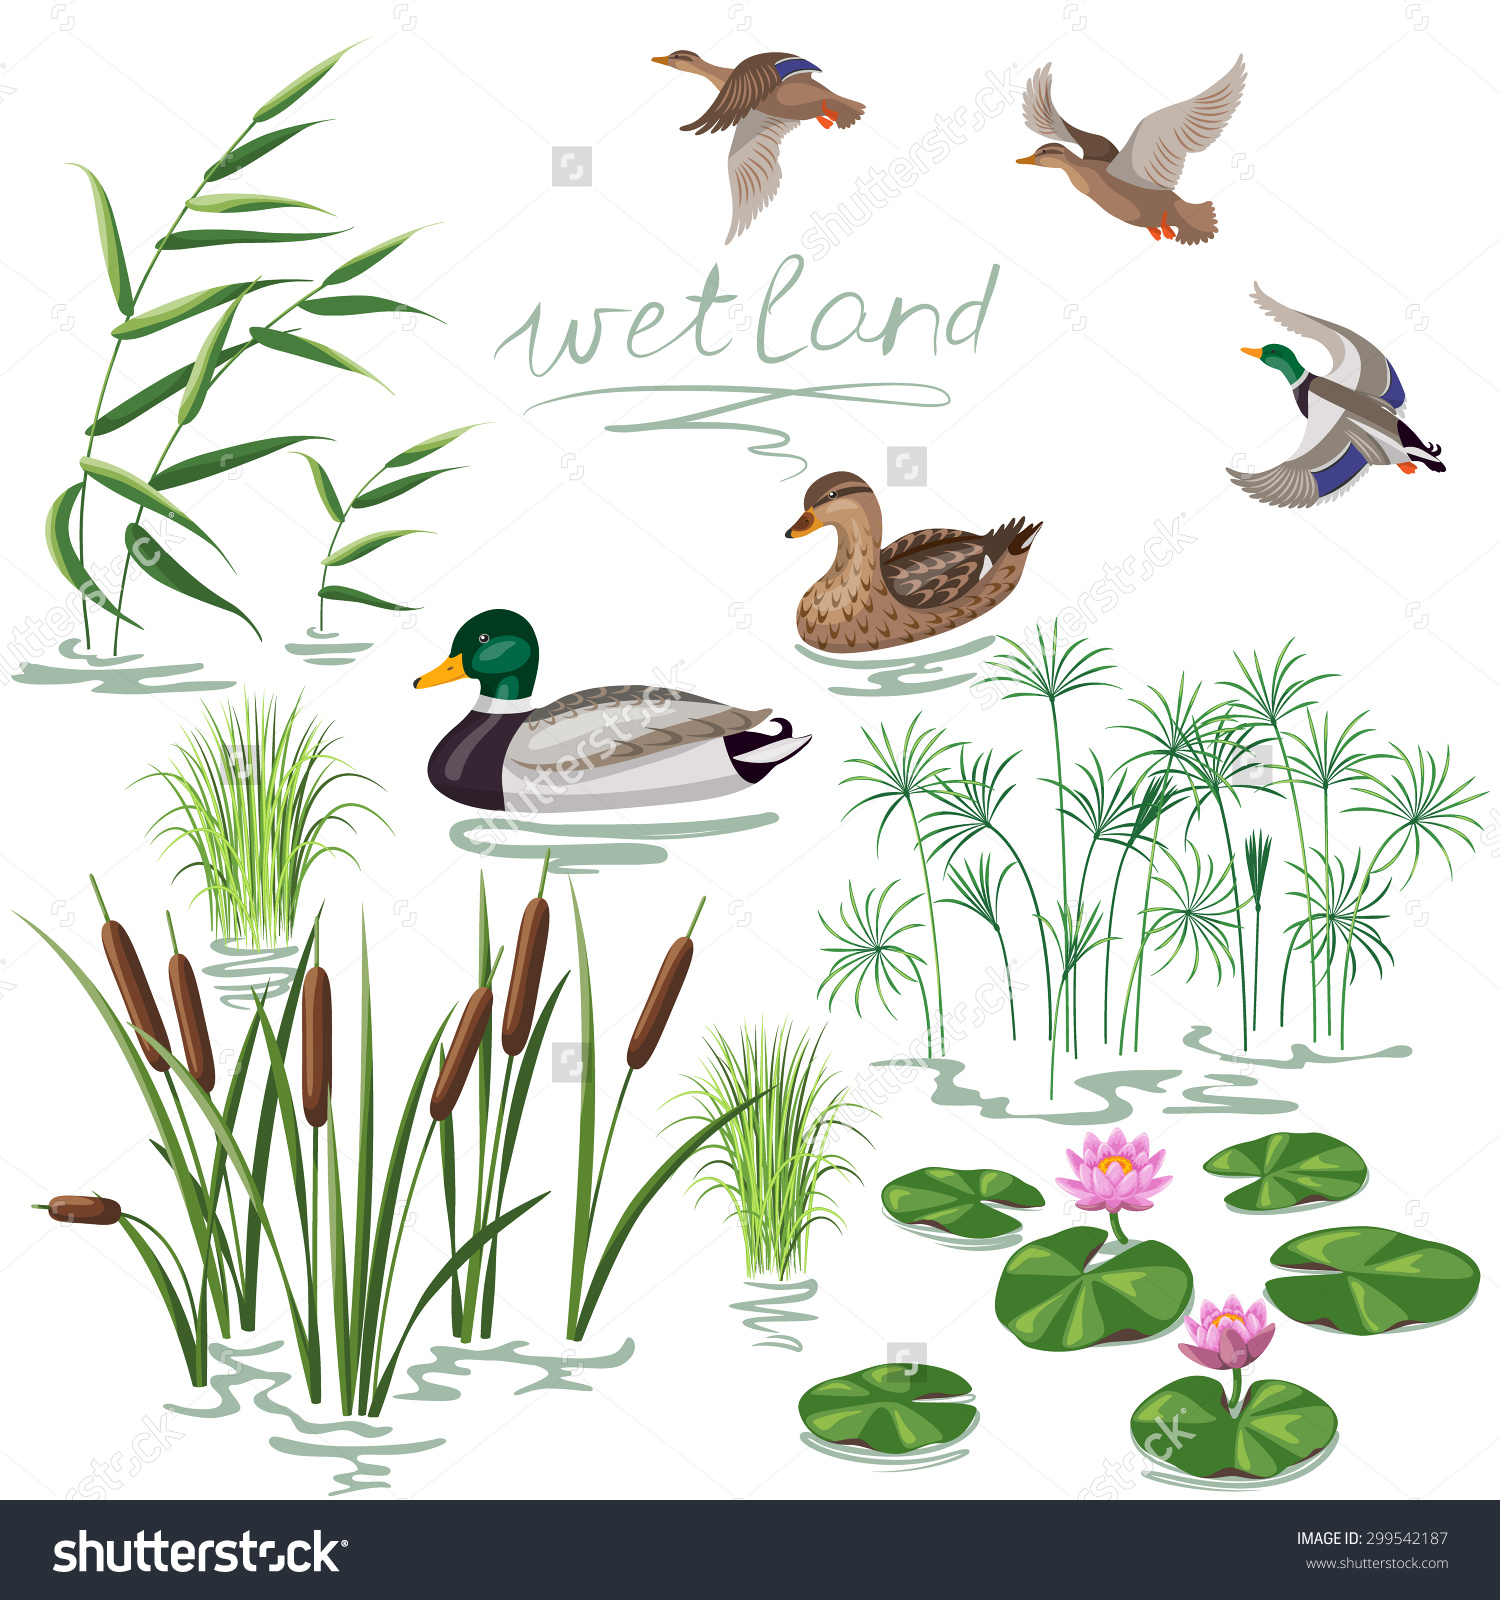 Set Wetland Plants Birds Simplified Image Stock Vector 299542187.